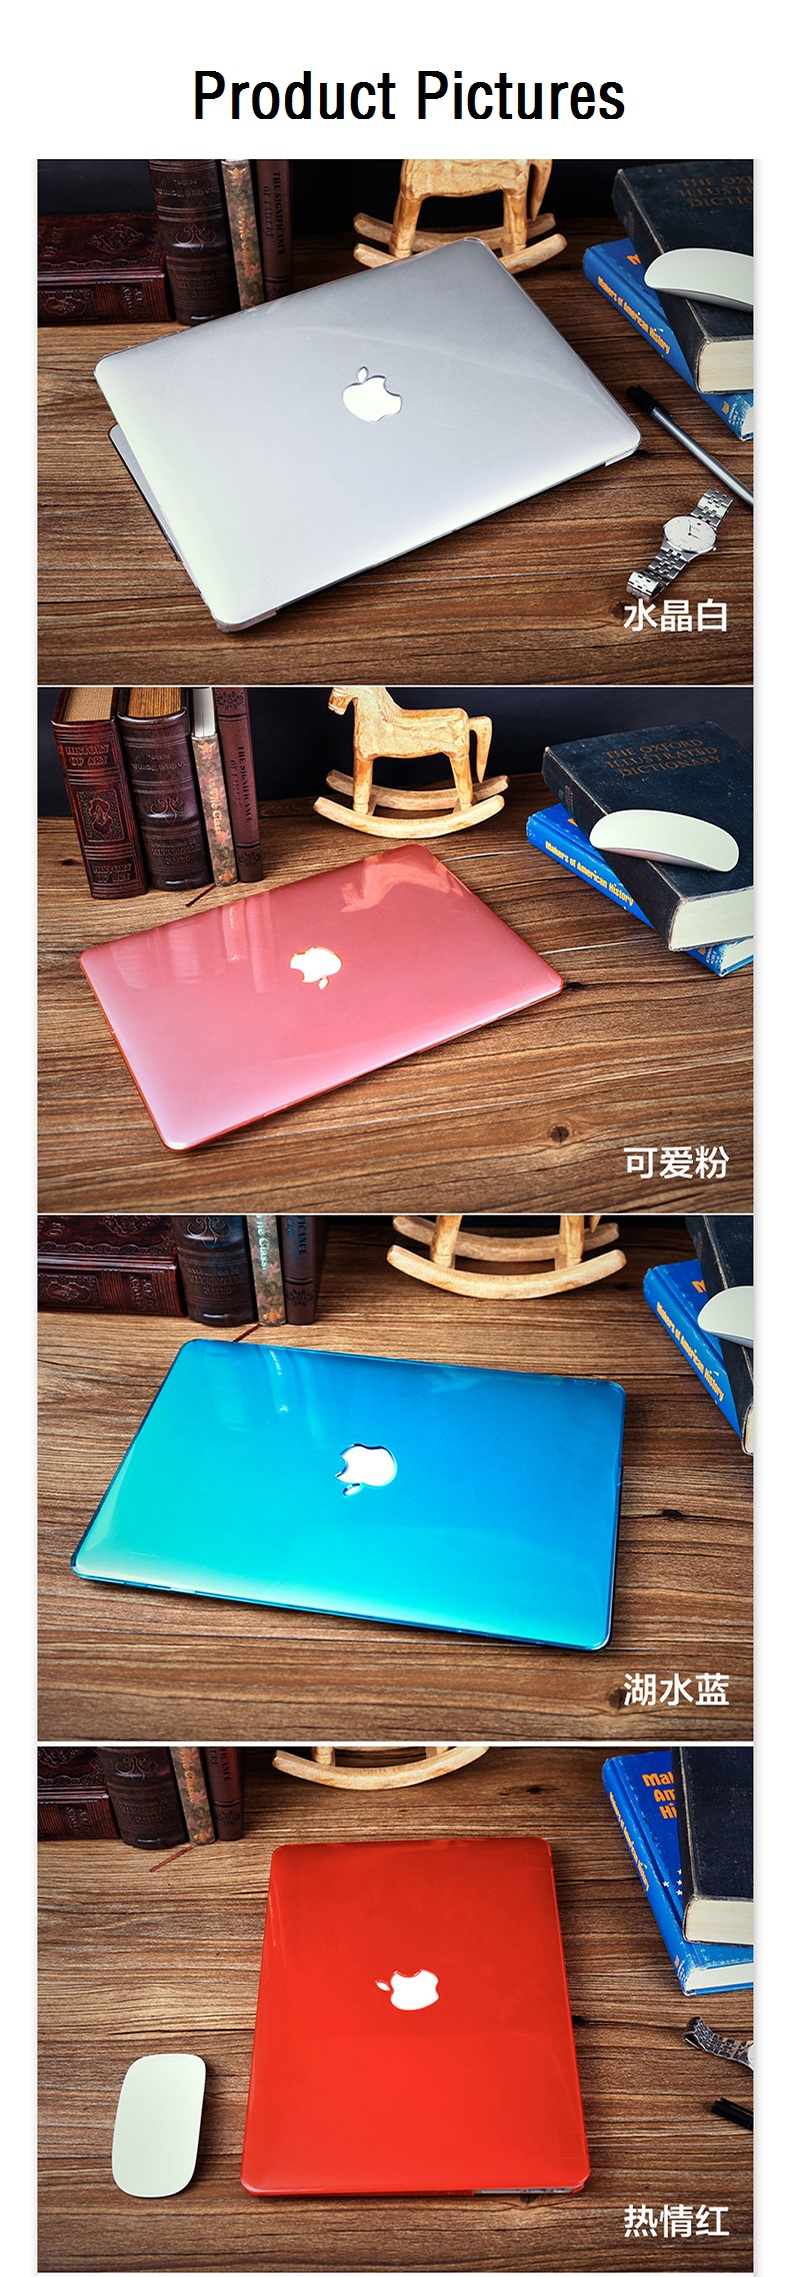 Solid For Macbook Pro 13 A1278 15 A1286 Laptop Case Crystal Transparent Hard PVC For Macbook Pro 13 15 A1278 A1286 Laptop Cover (14)